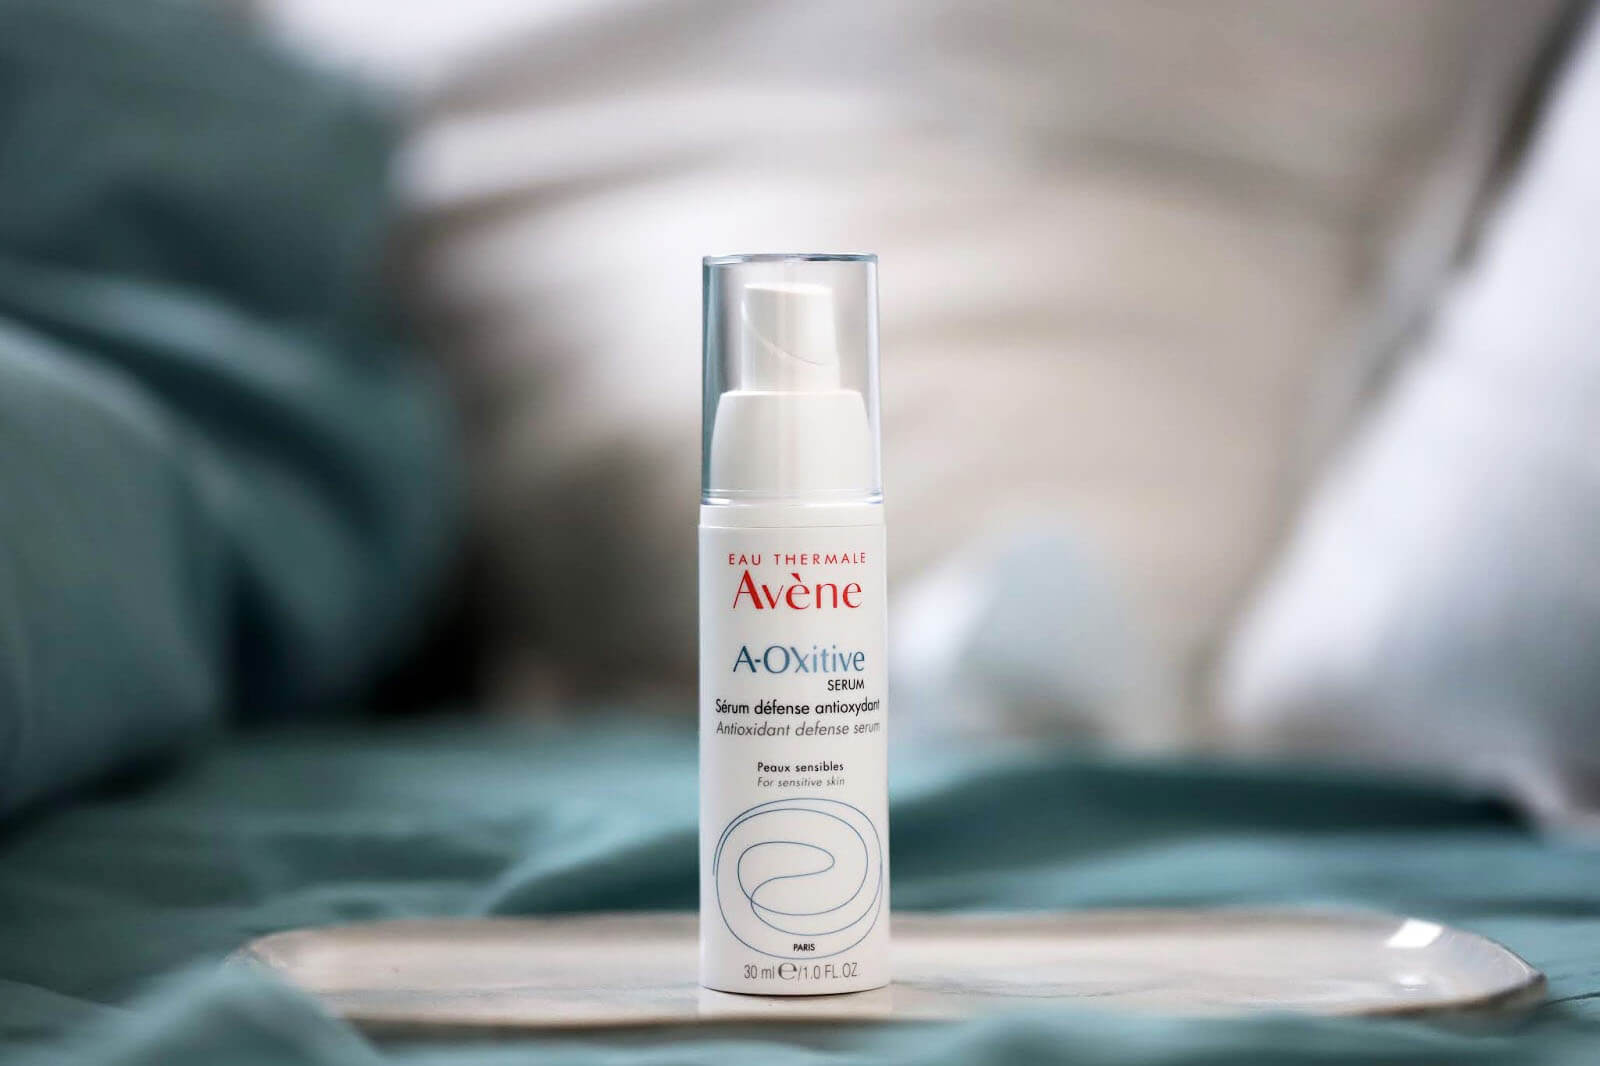 Avene A Oxitive Serum Avis